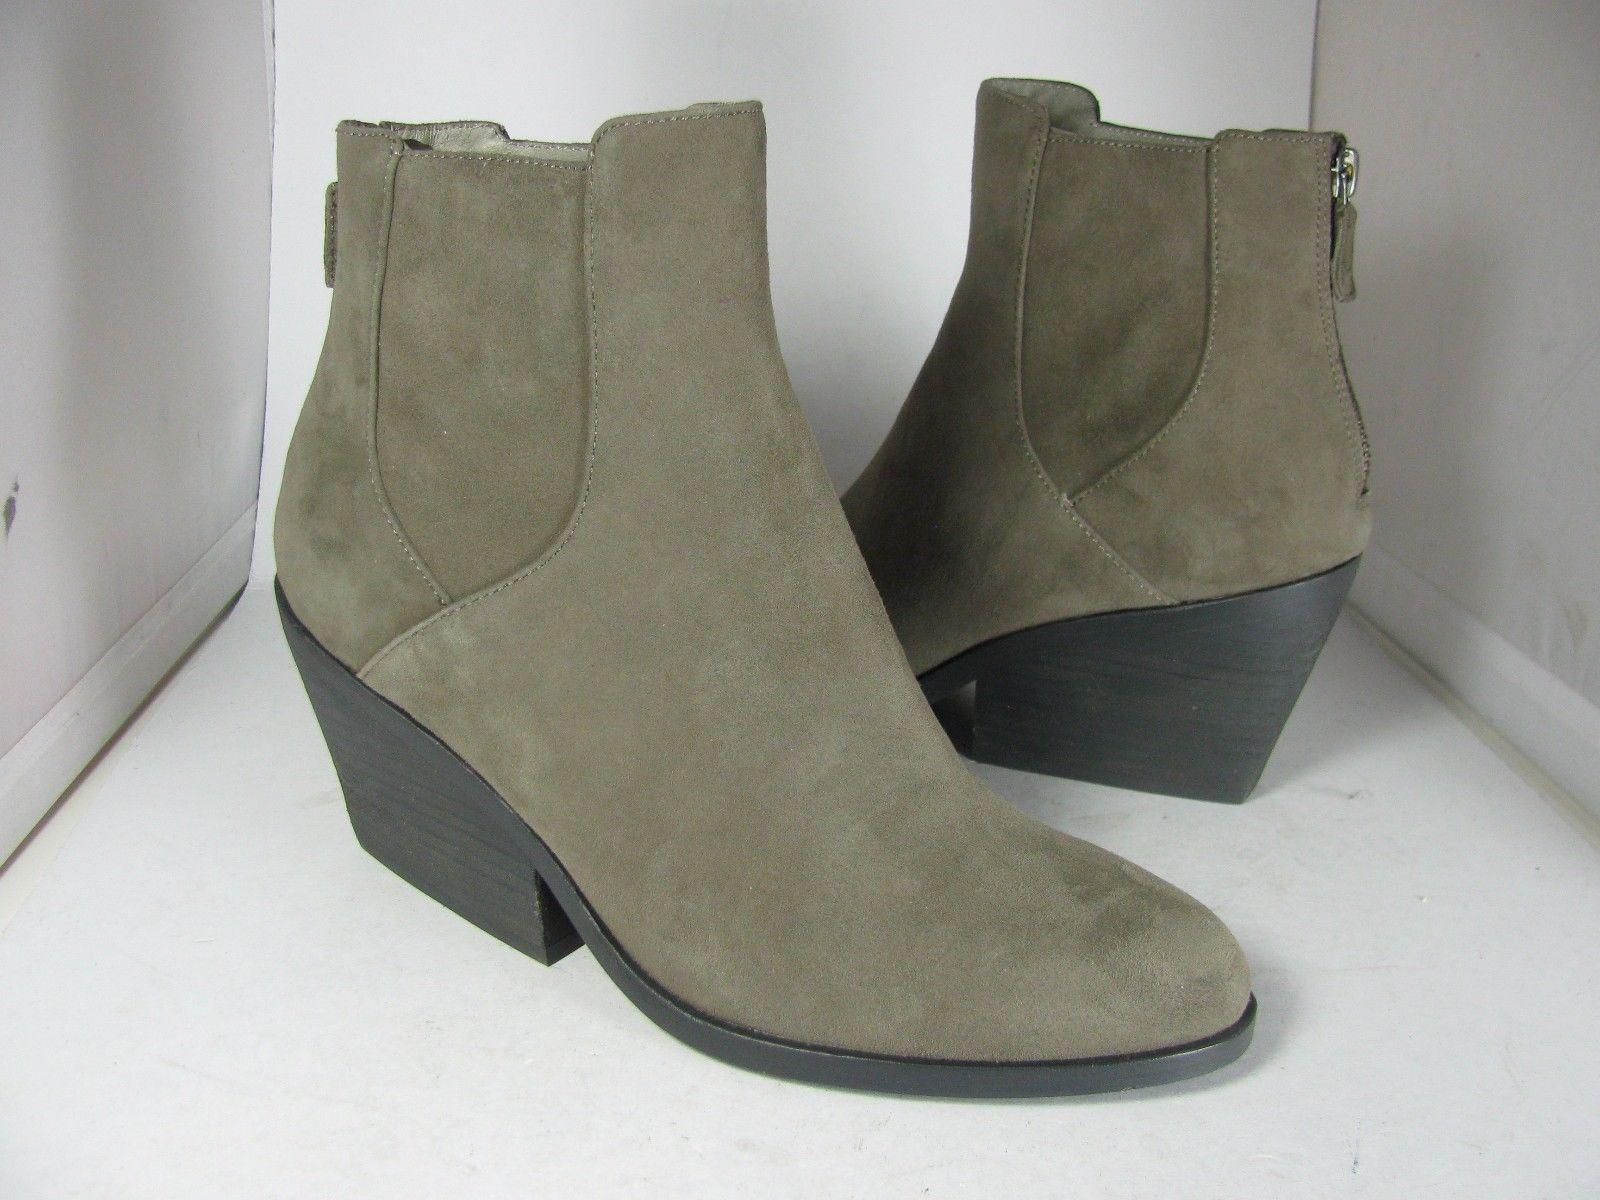 Womens Boots eileen fisher shadow suede peer qr1i63x3